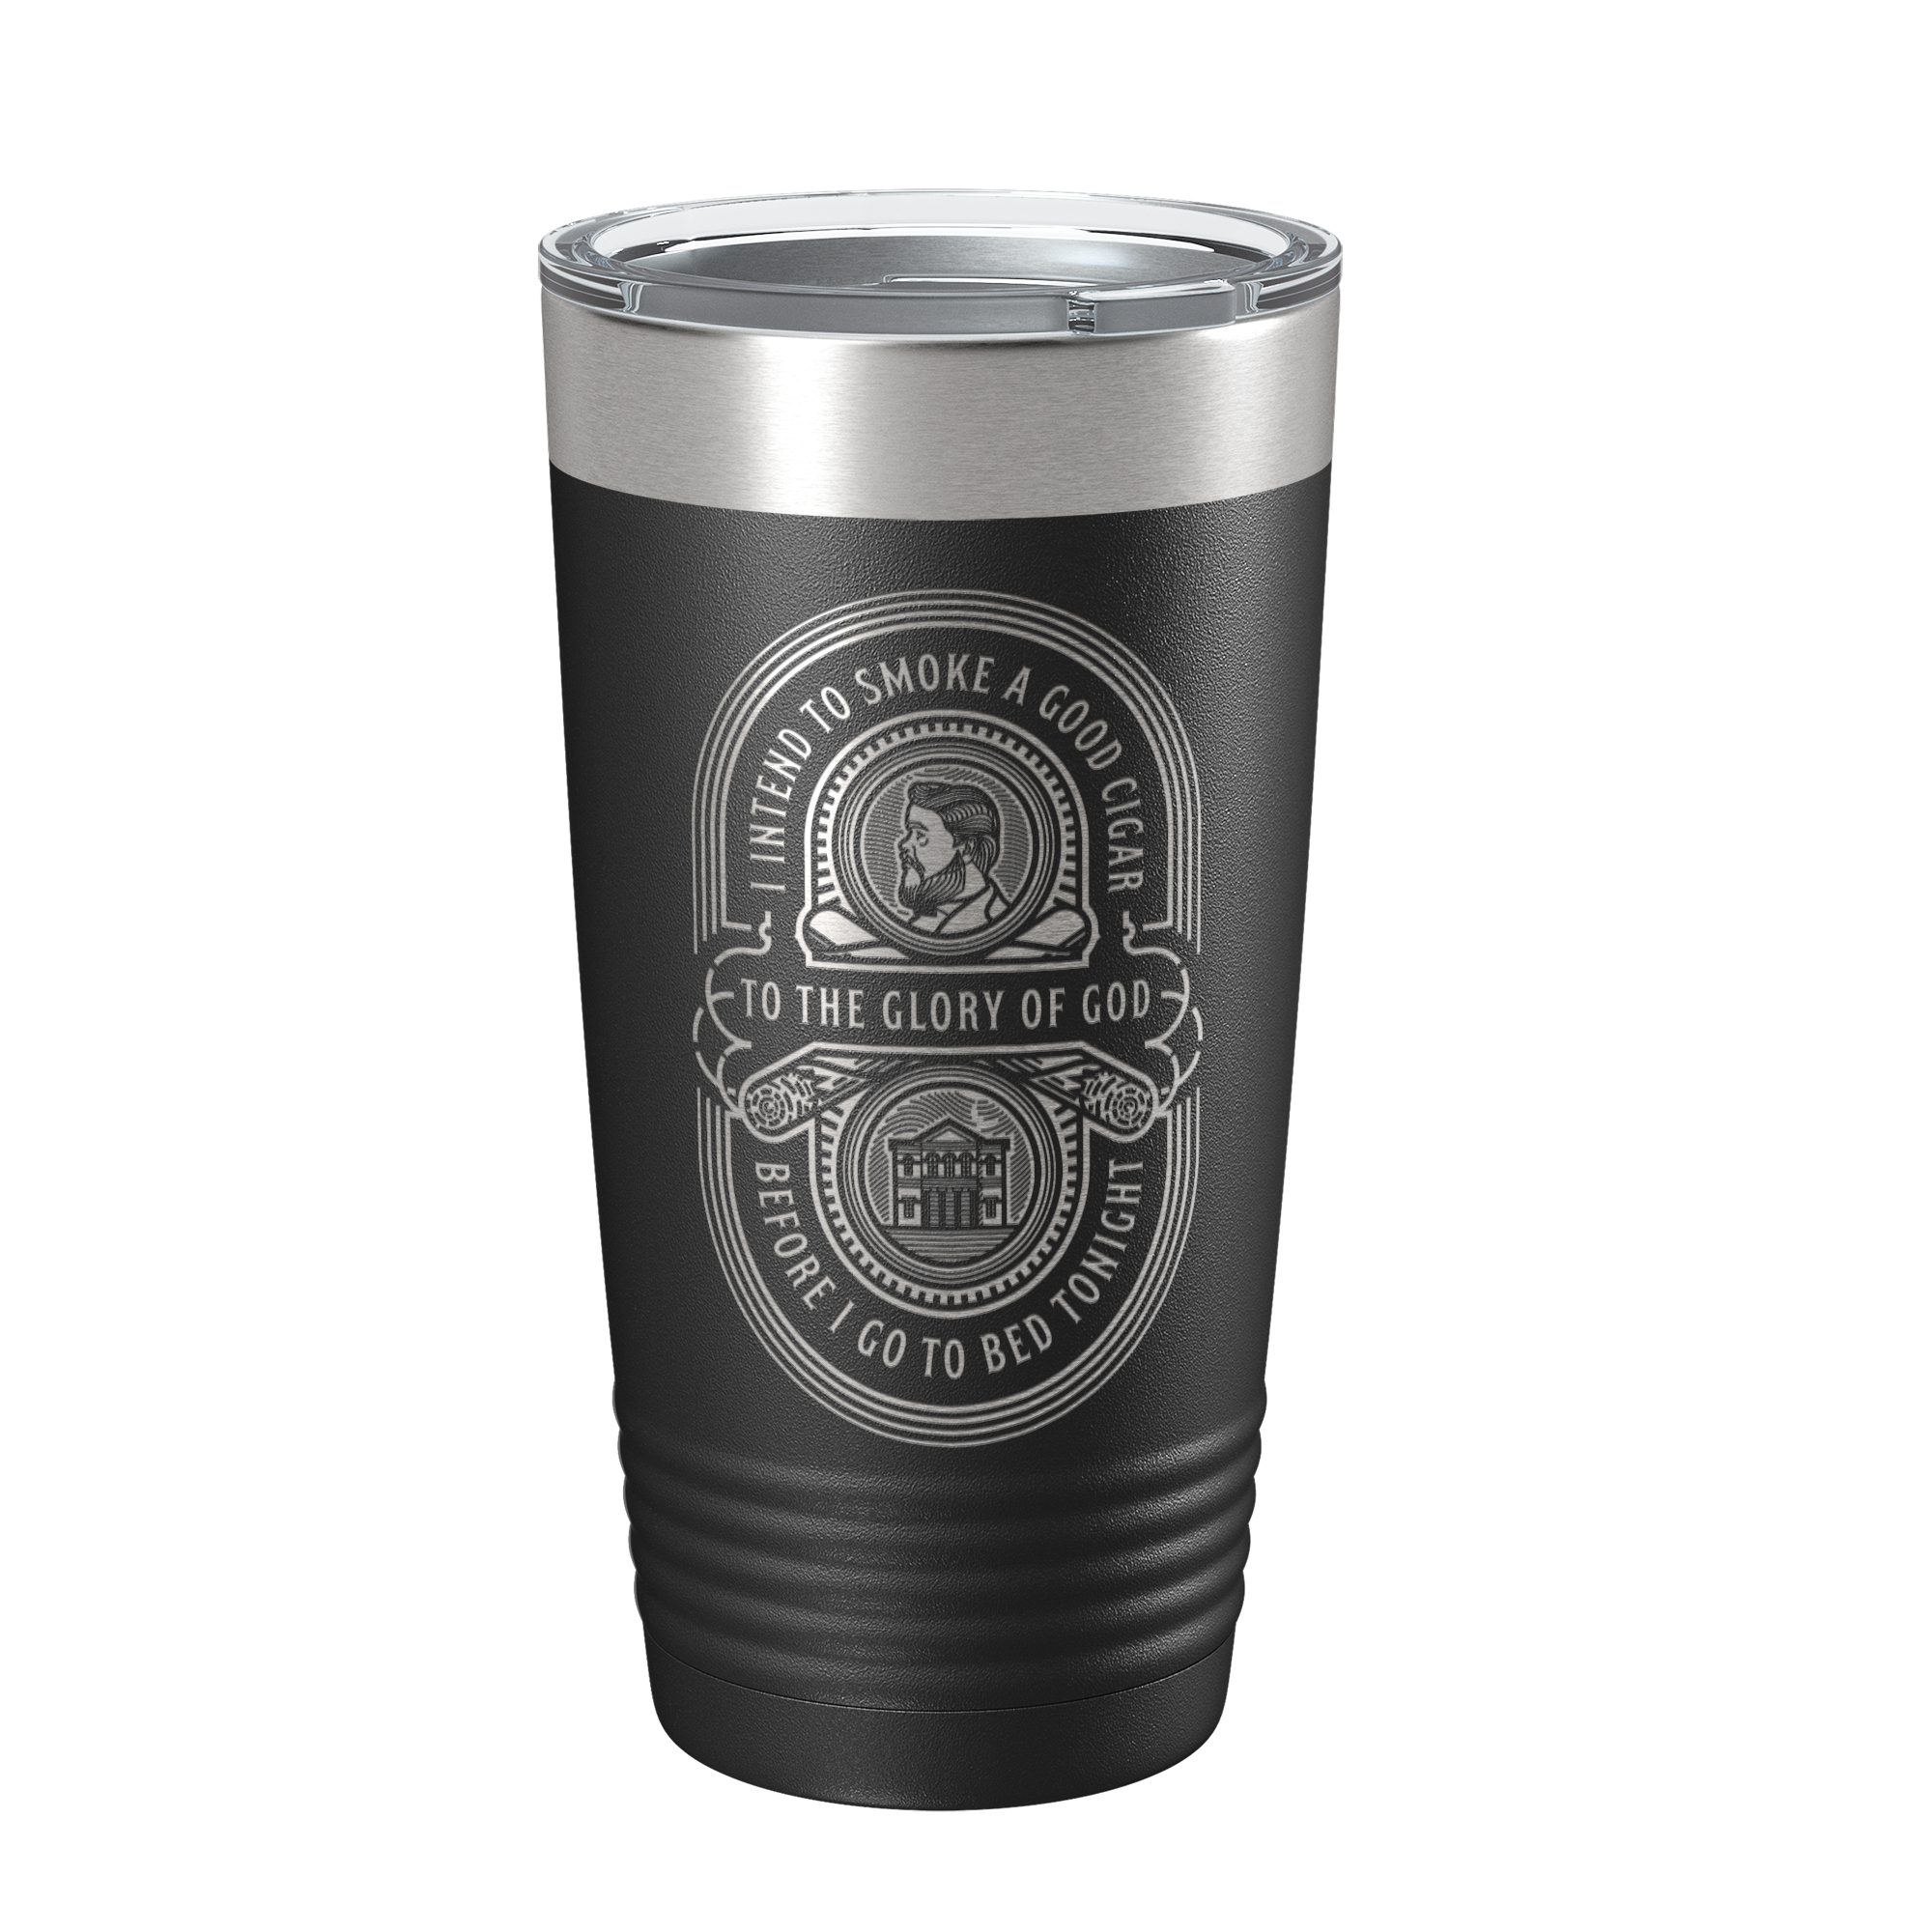 Charles Spurgeon Cigar Quote 20oz Insulated Tumbler